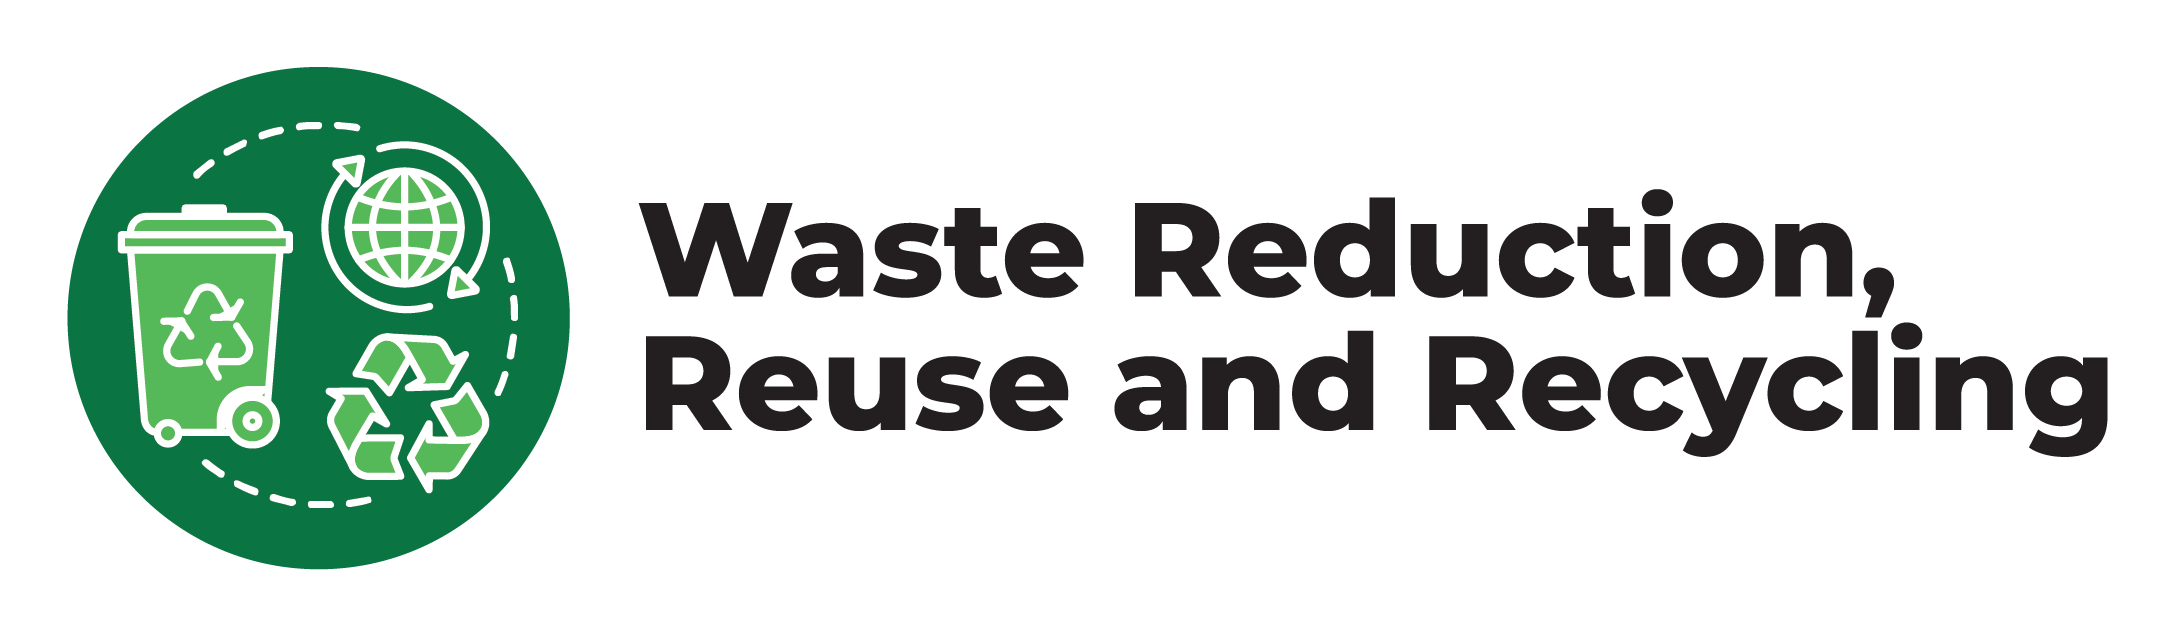 OSI_ICON_Waste Reduction, Reuse and Recycling